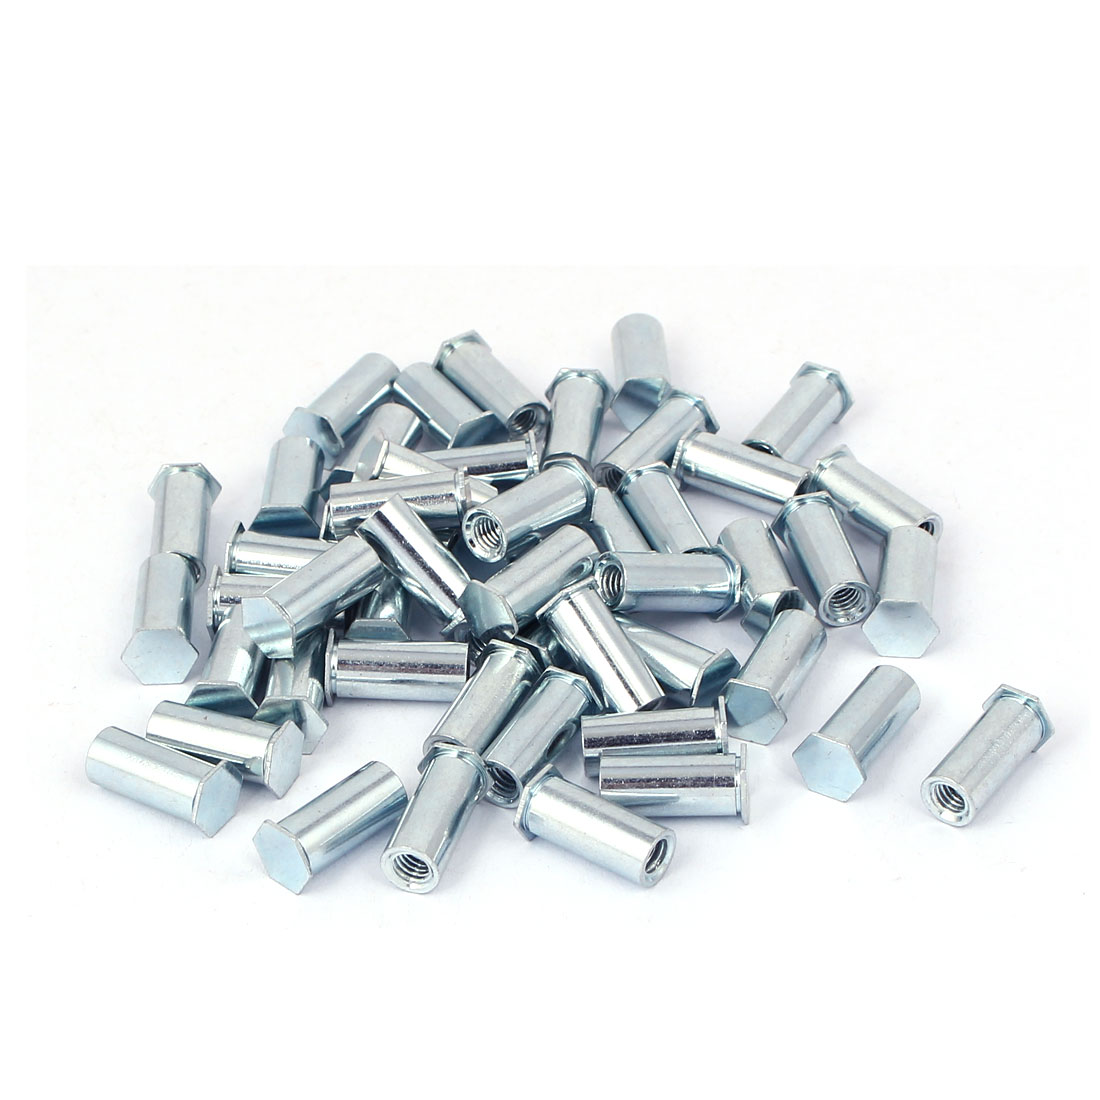 M4 x 14mm Female Thread Hex Head Blind Hole Self Clinching Standoffs 50 Pcs